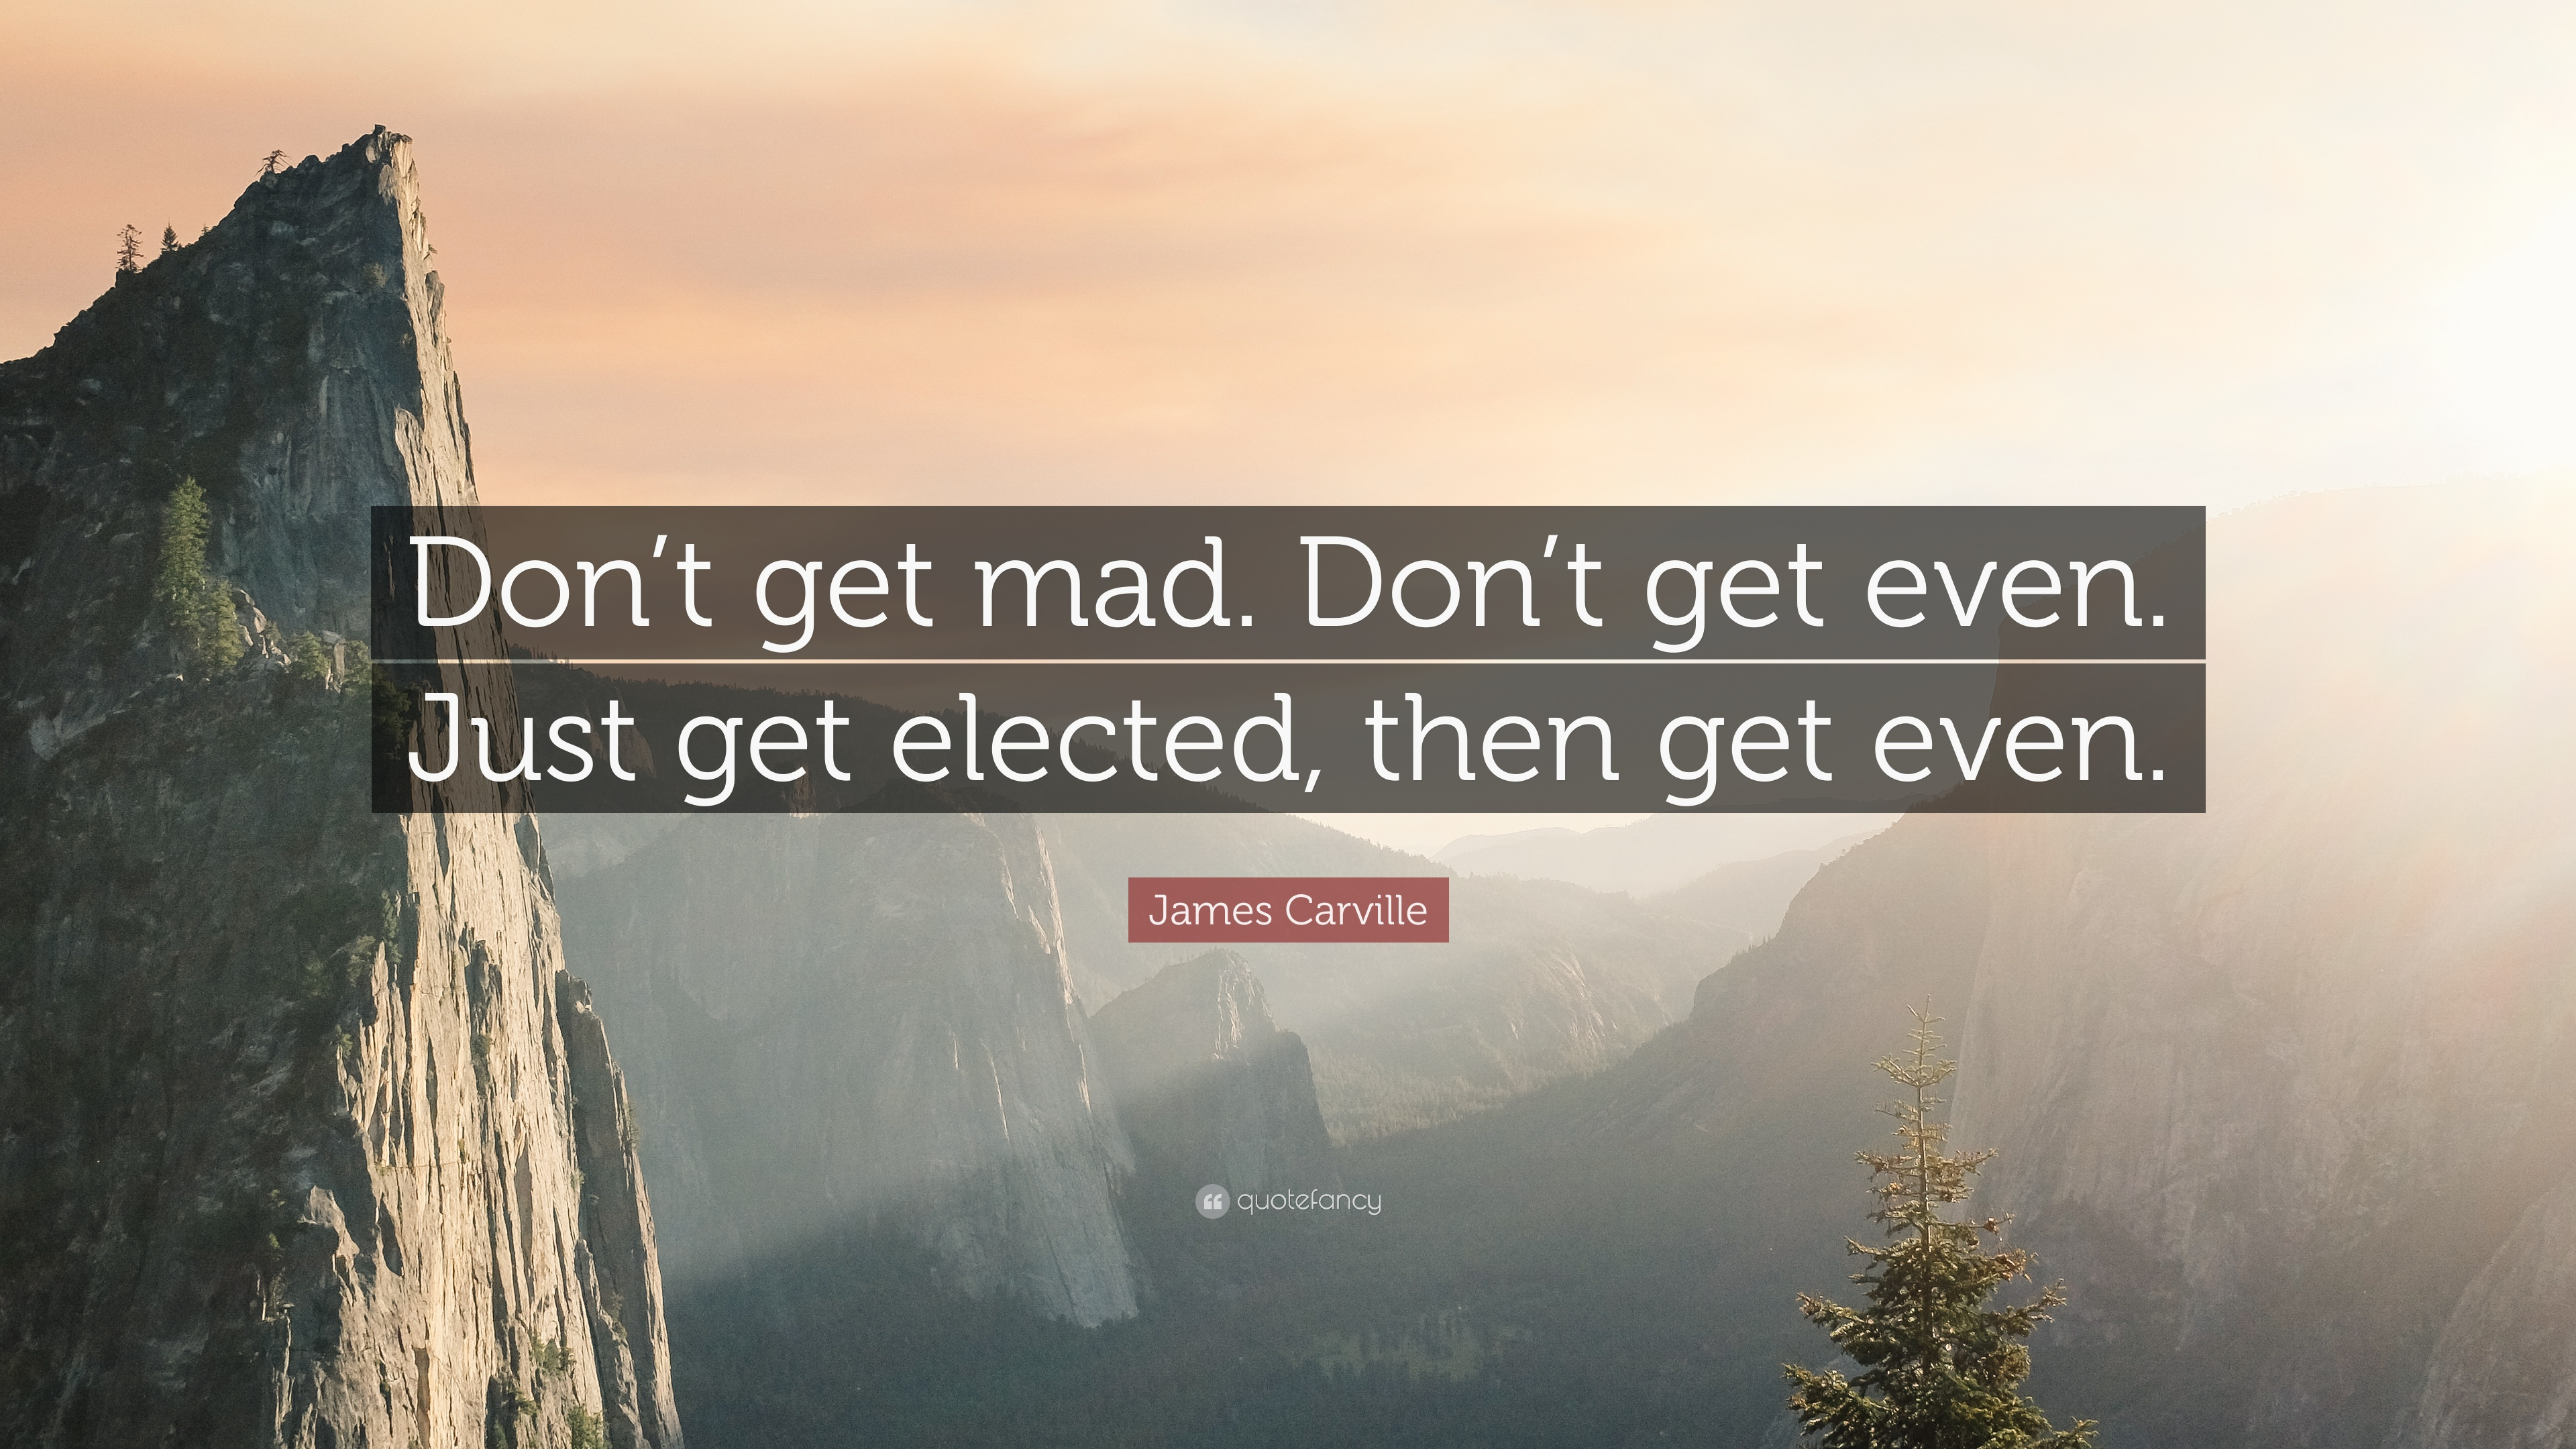 James Carville Quote: U201cDonu0027t Get Mad. Donu0027t Get Even